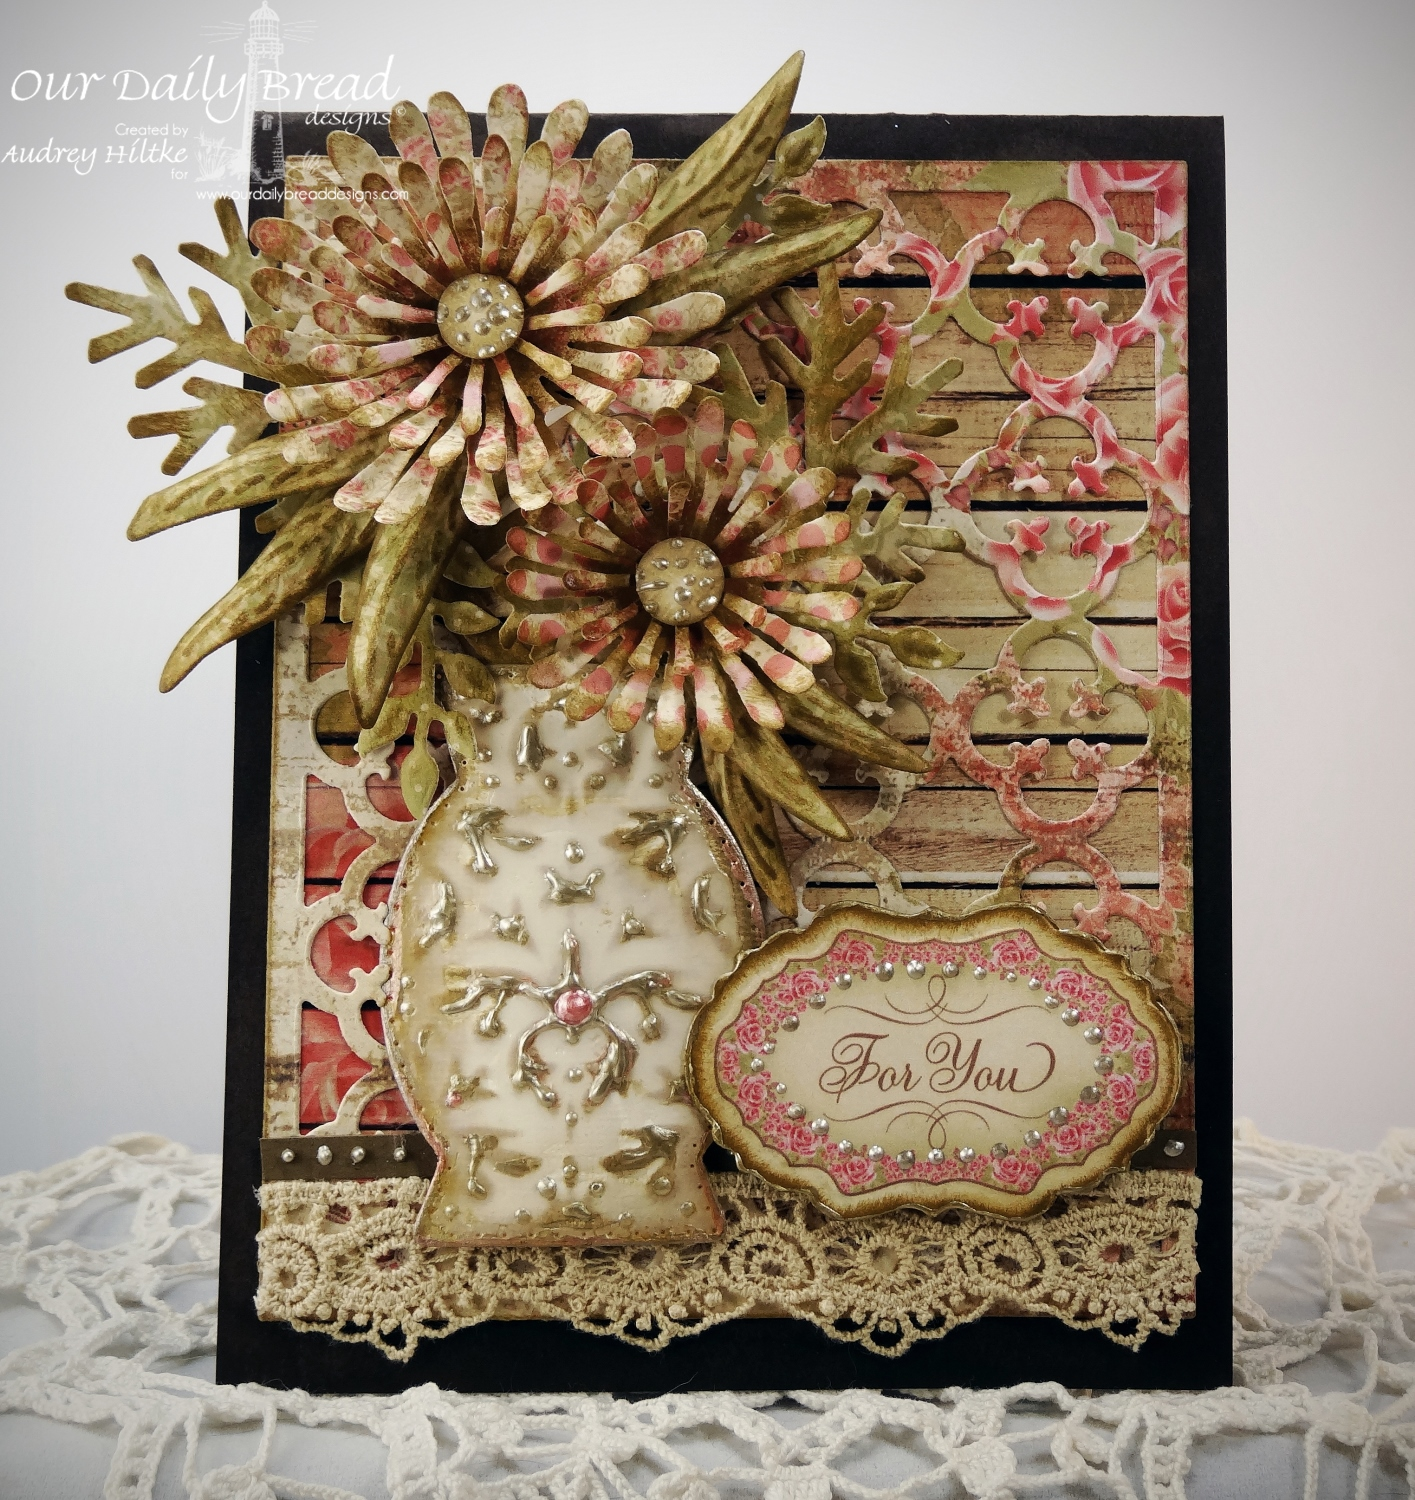 Our Daily Bread Designs Custom Asters and Leaves Die, ODBD Custom Decorative Vase Die, ODBD Custom Vintage Labels Die, ODBD Custom Fancy Foliage Die, ODBD Custom Quatrefoil Pattern Die, ODBD Blushing Rose Paper Collection